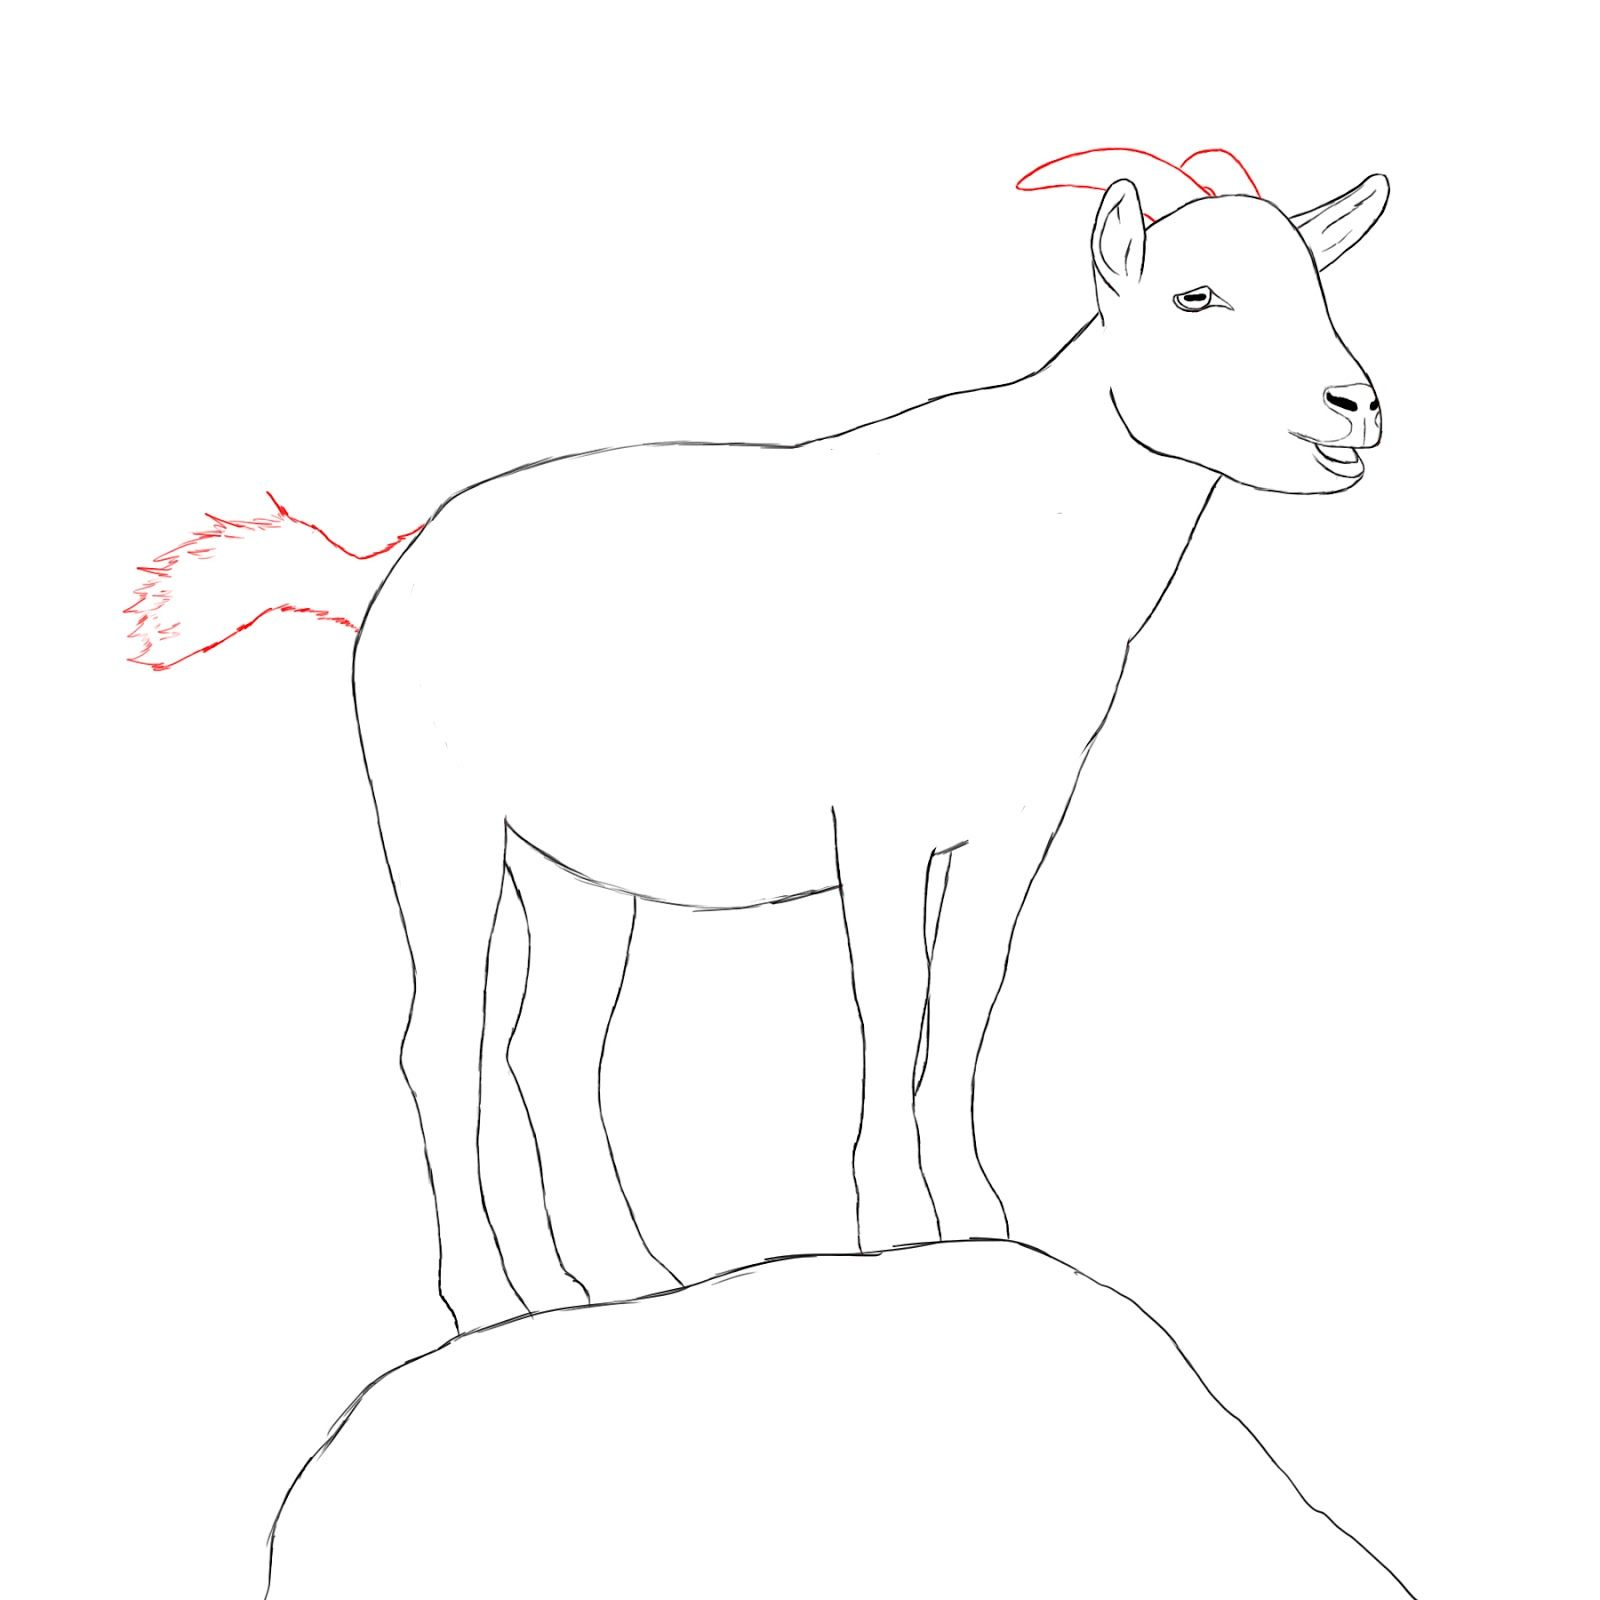 goats today we will be learning how to draw a